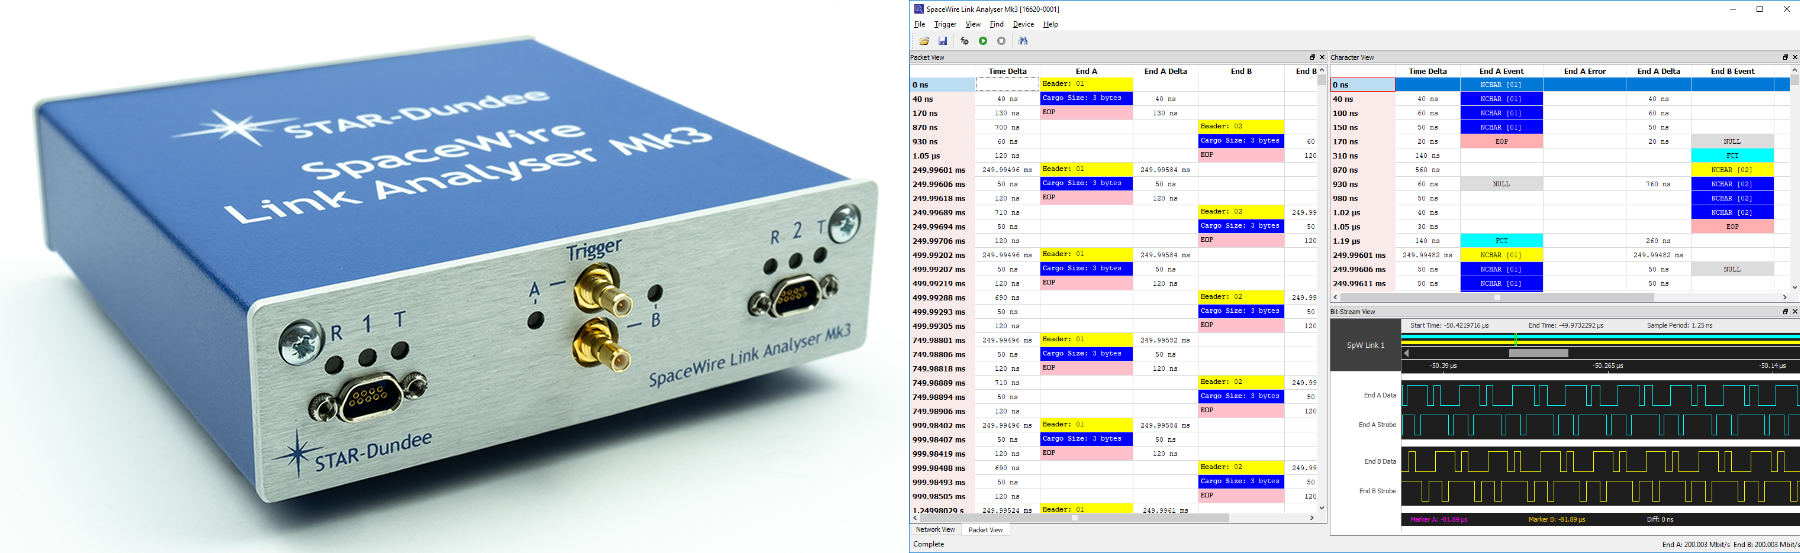 Link Analyser Mk3 Hardware and Software